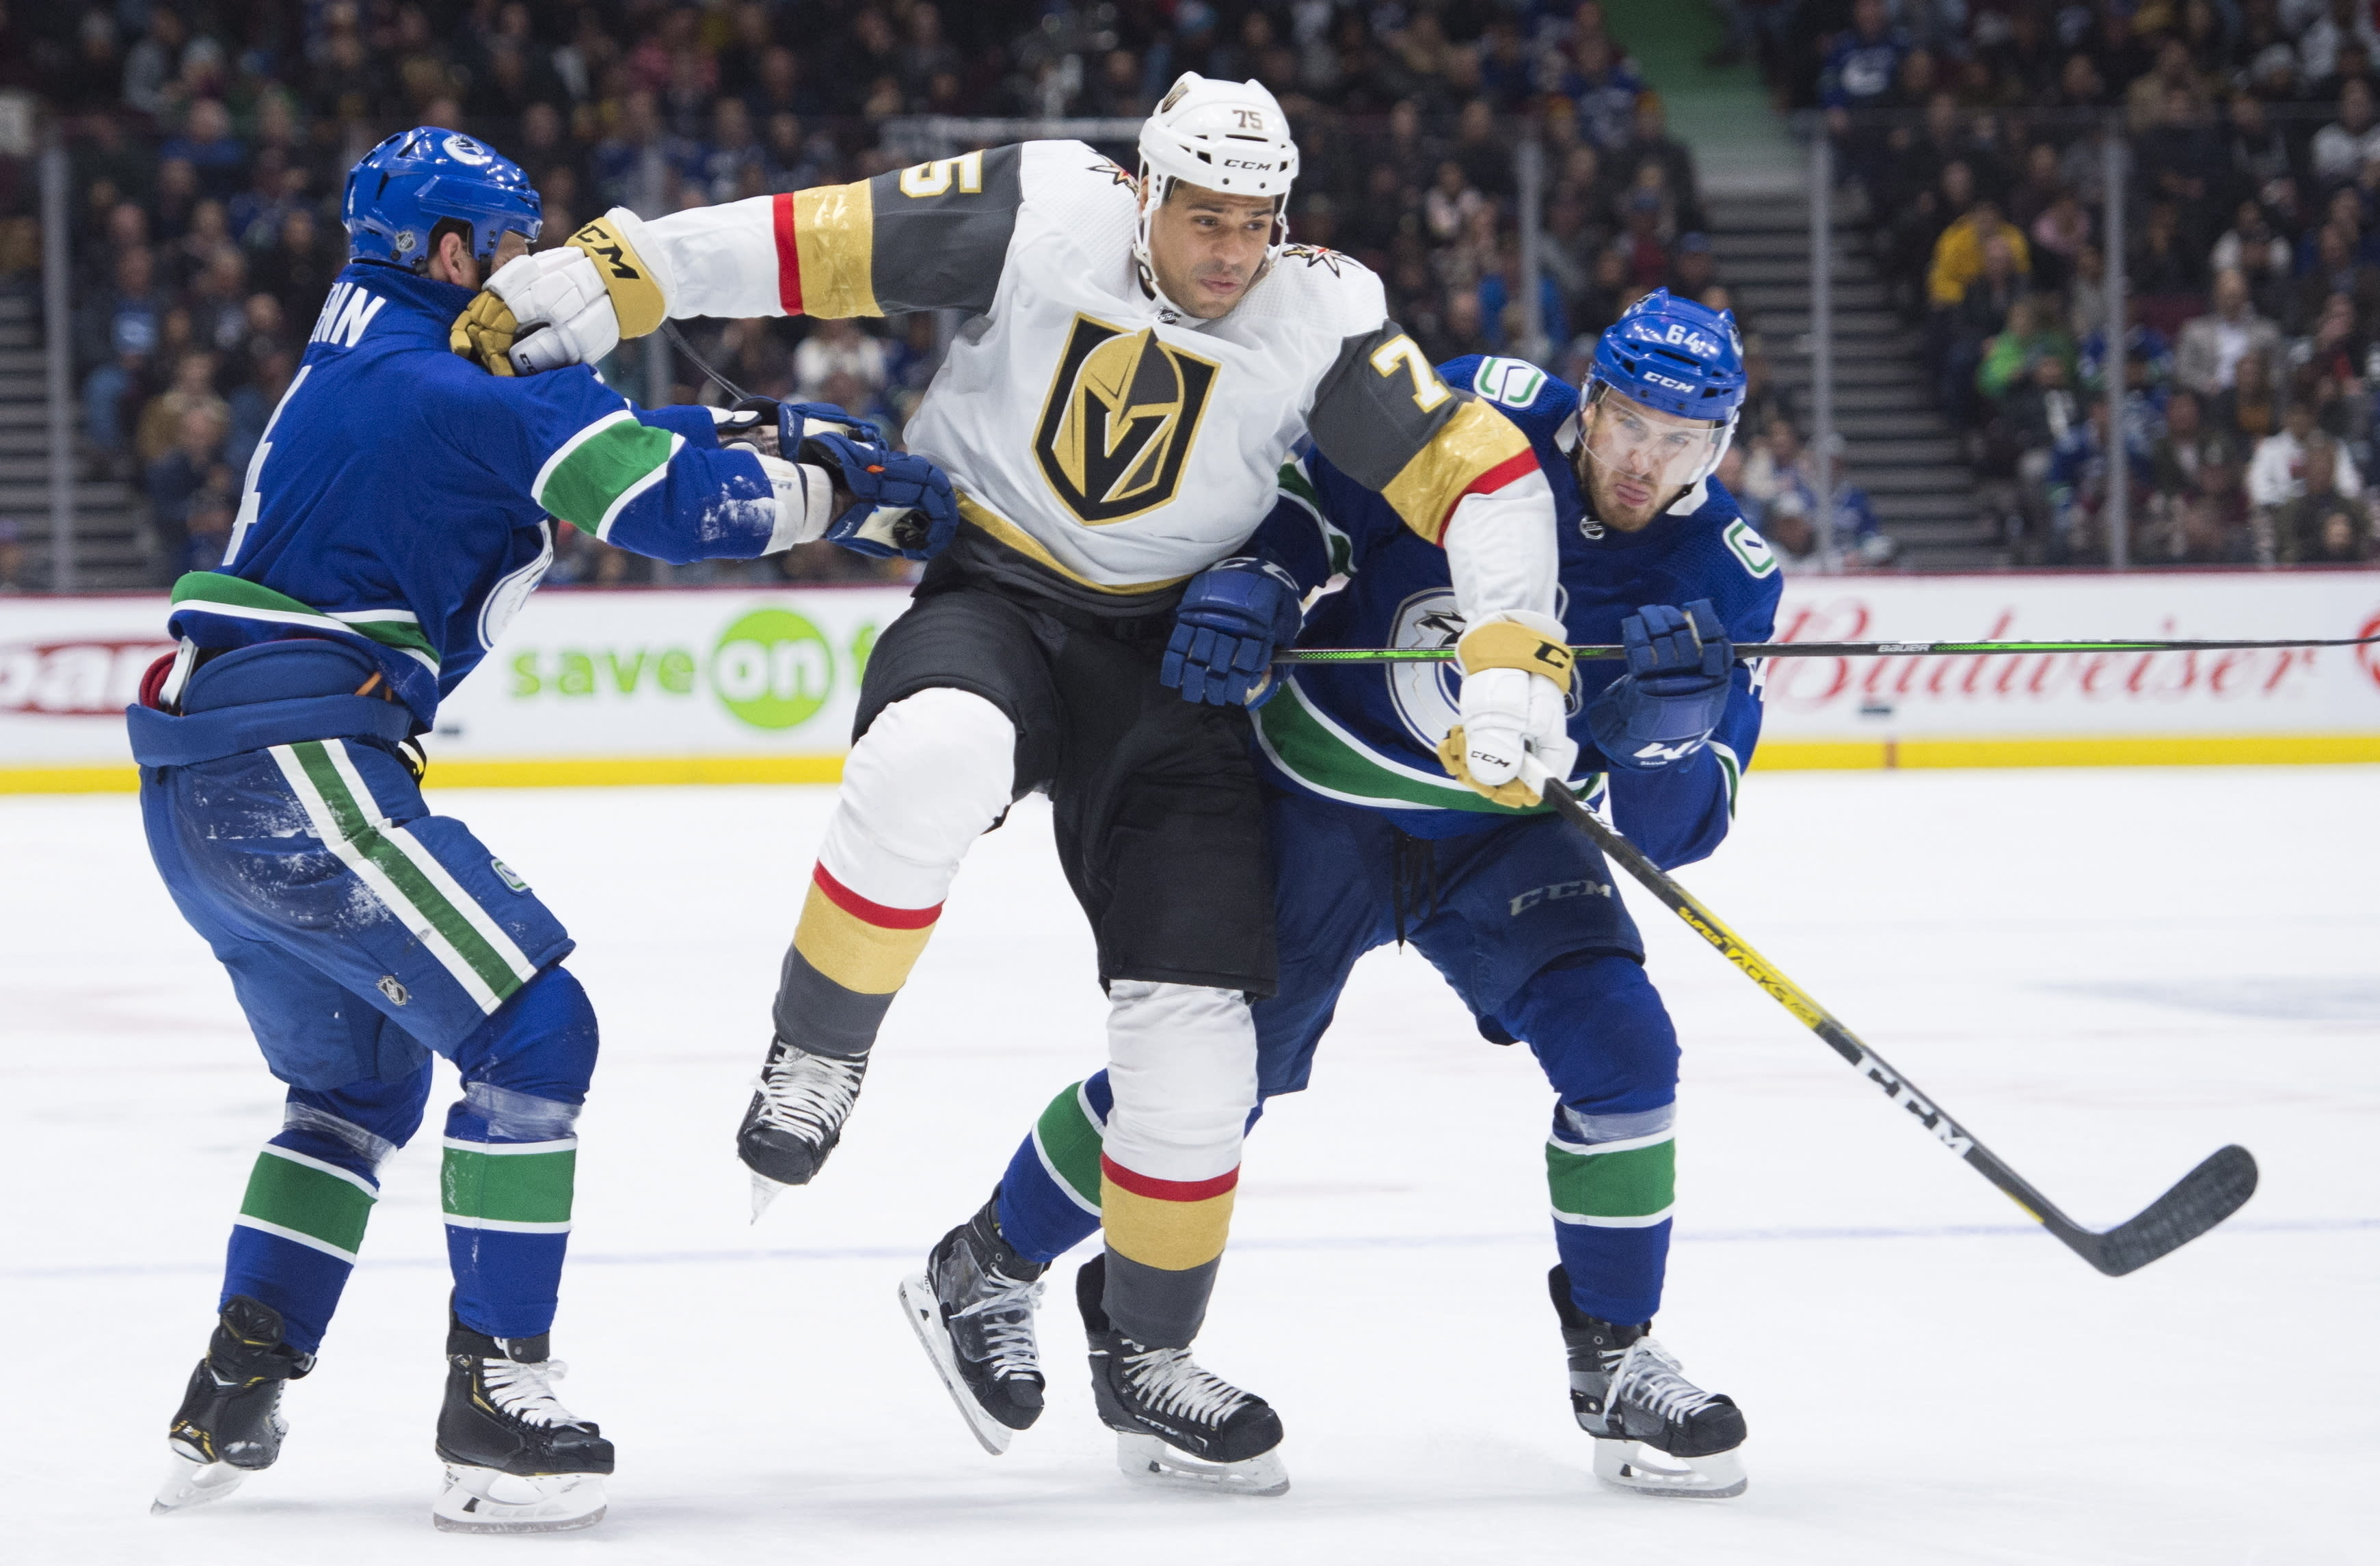 FILE - In this Dec 19, 2019, file photo, Vegas Golden Knights right wing Ryan Reaves (75) jumps to get past Vancouver Canucks defenseman Jordie Benn, left, and center Tyler Motte (64) during the third period of an NHL hockey game in Vancouver, British Columbia. The NHL ditched divisional playoffs to go back to the old-school format for its summer postseason and still ended up with all division rivals facing off in the second round. It's the Golden Knights against the Canucks in the Pacific series (Jonathan Hayward/The Canadian Press via AP, File)